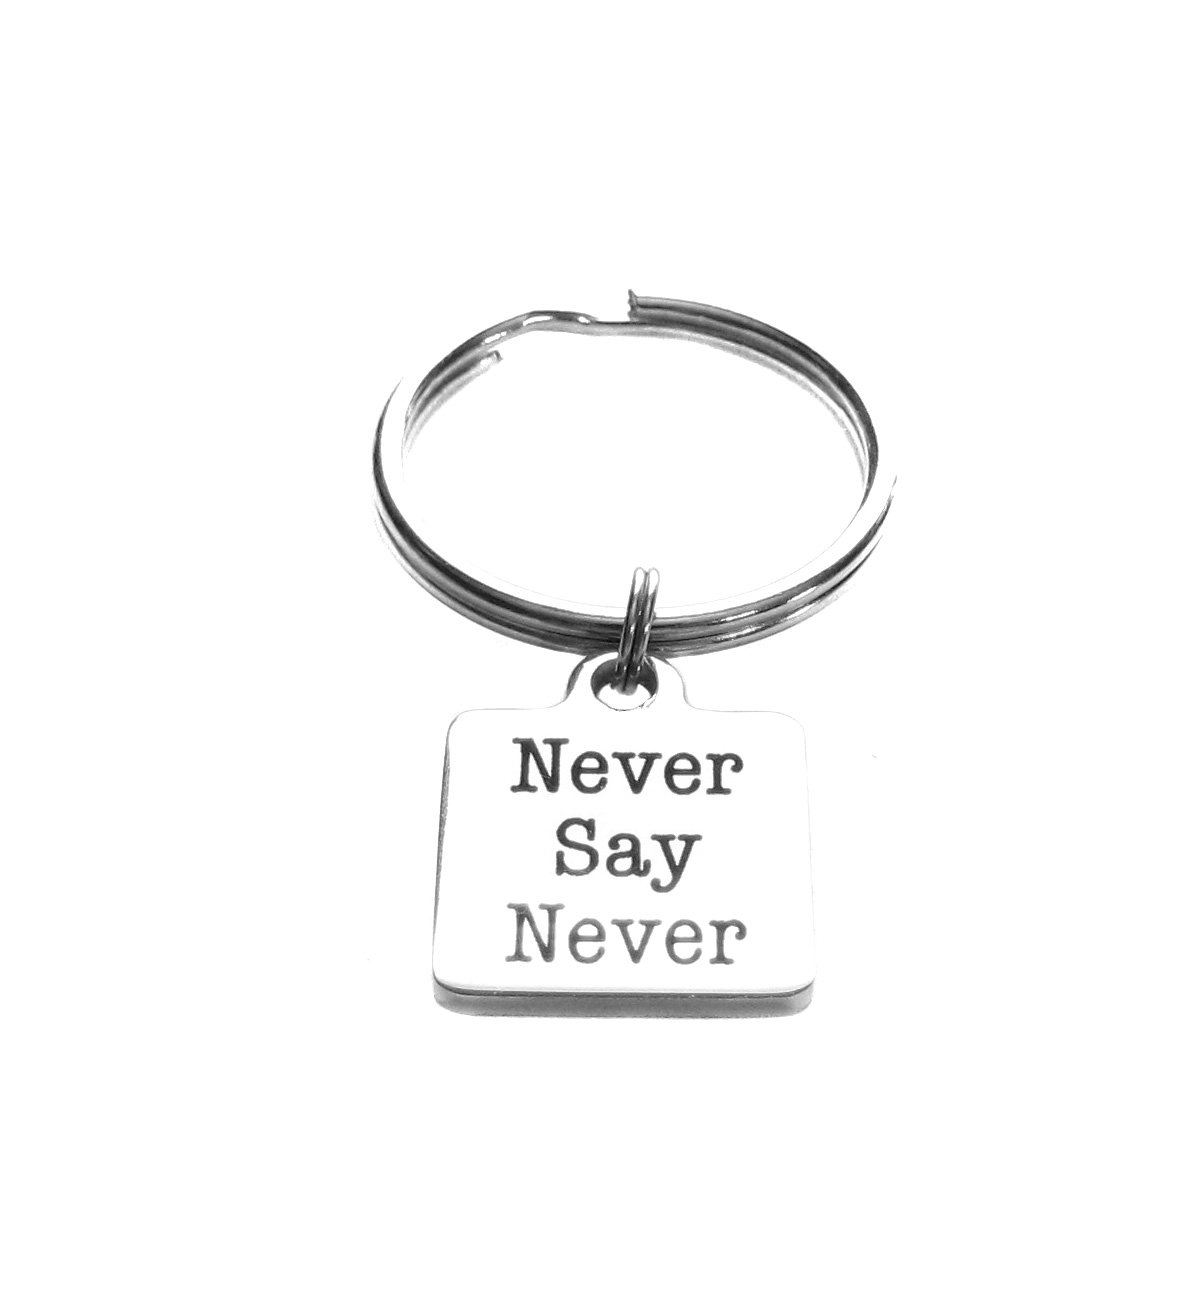 Never Say Never Stainless Steel Square Charm Keychain, Luggage Inspirational Gift